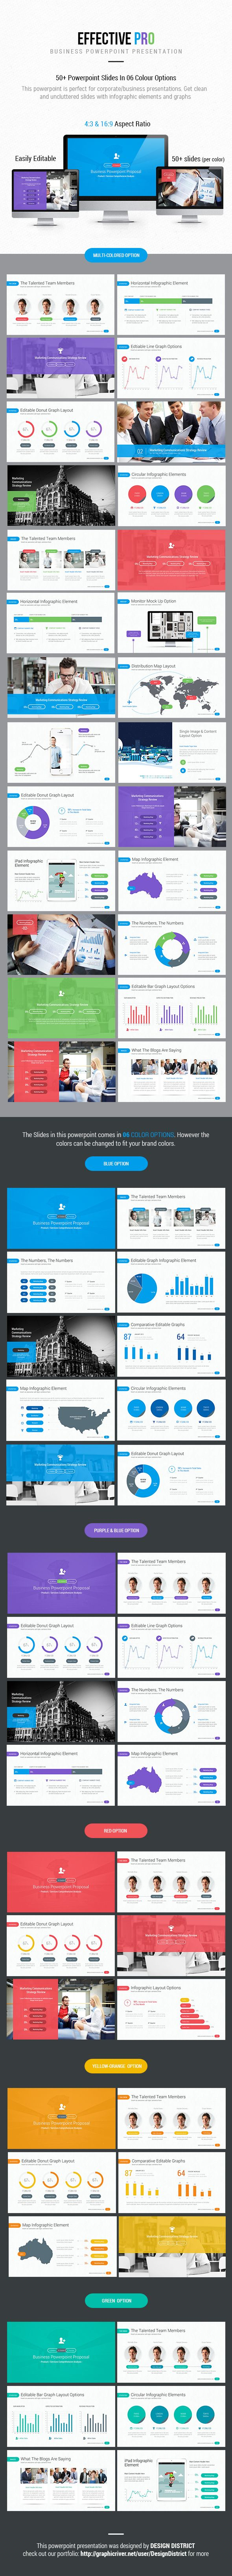 45 best ppt design images on pinterest | page layout, presentation, Presentation templates